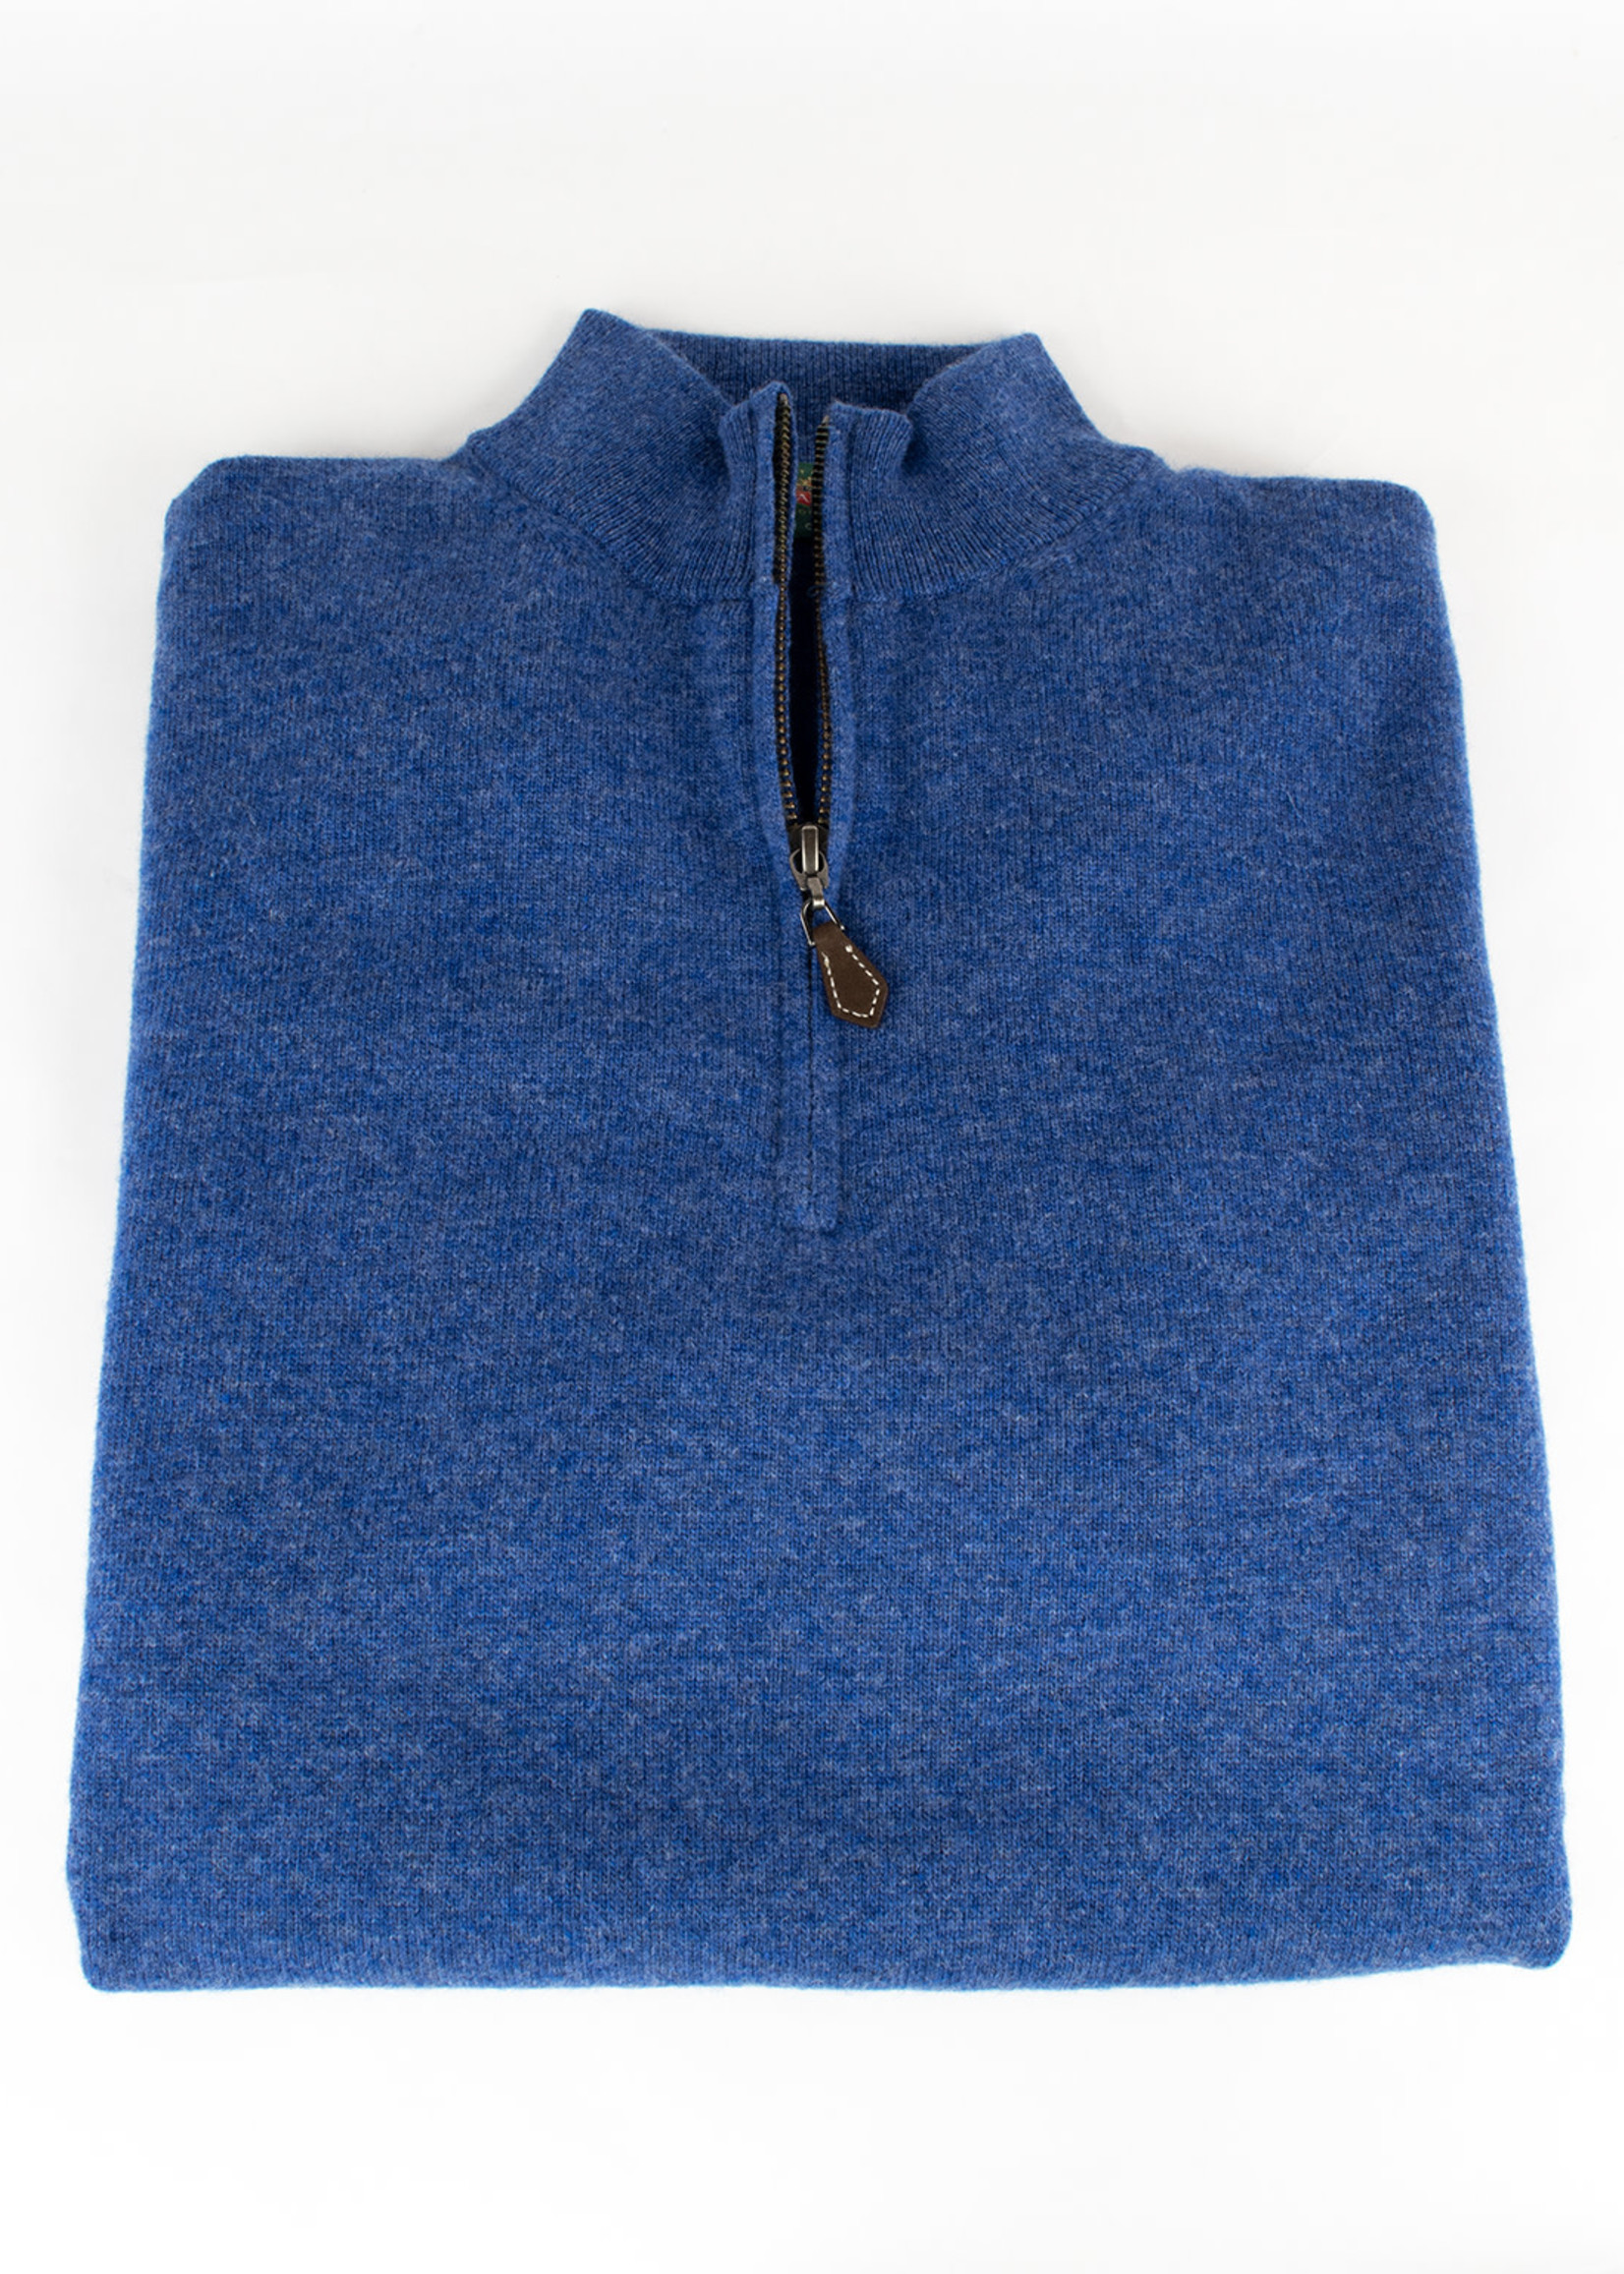 Alan Paine Alan Paine Cairns Ullswater Geelong 1/4 Zip Mock Neck Sweater by Alan Paine